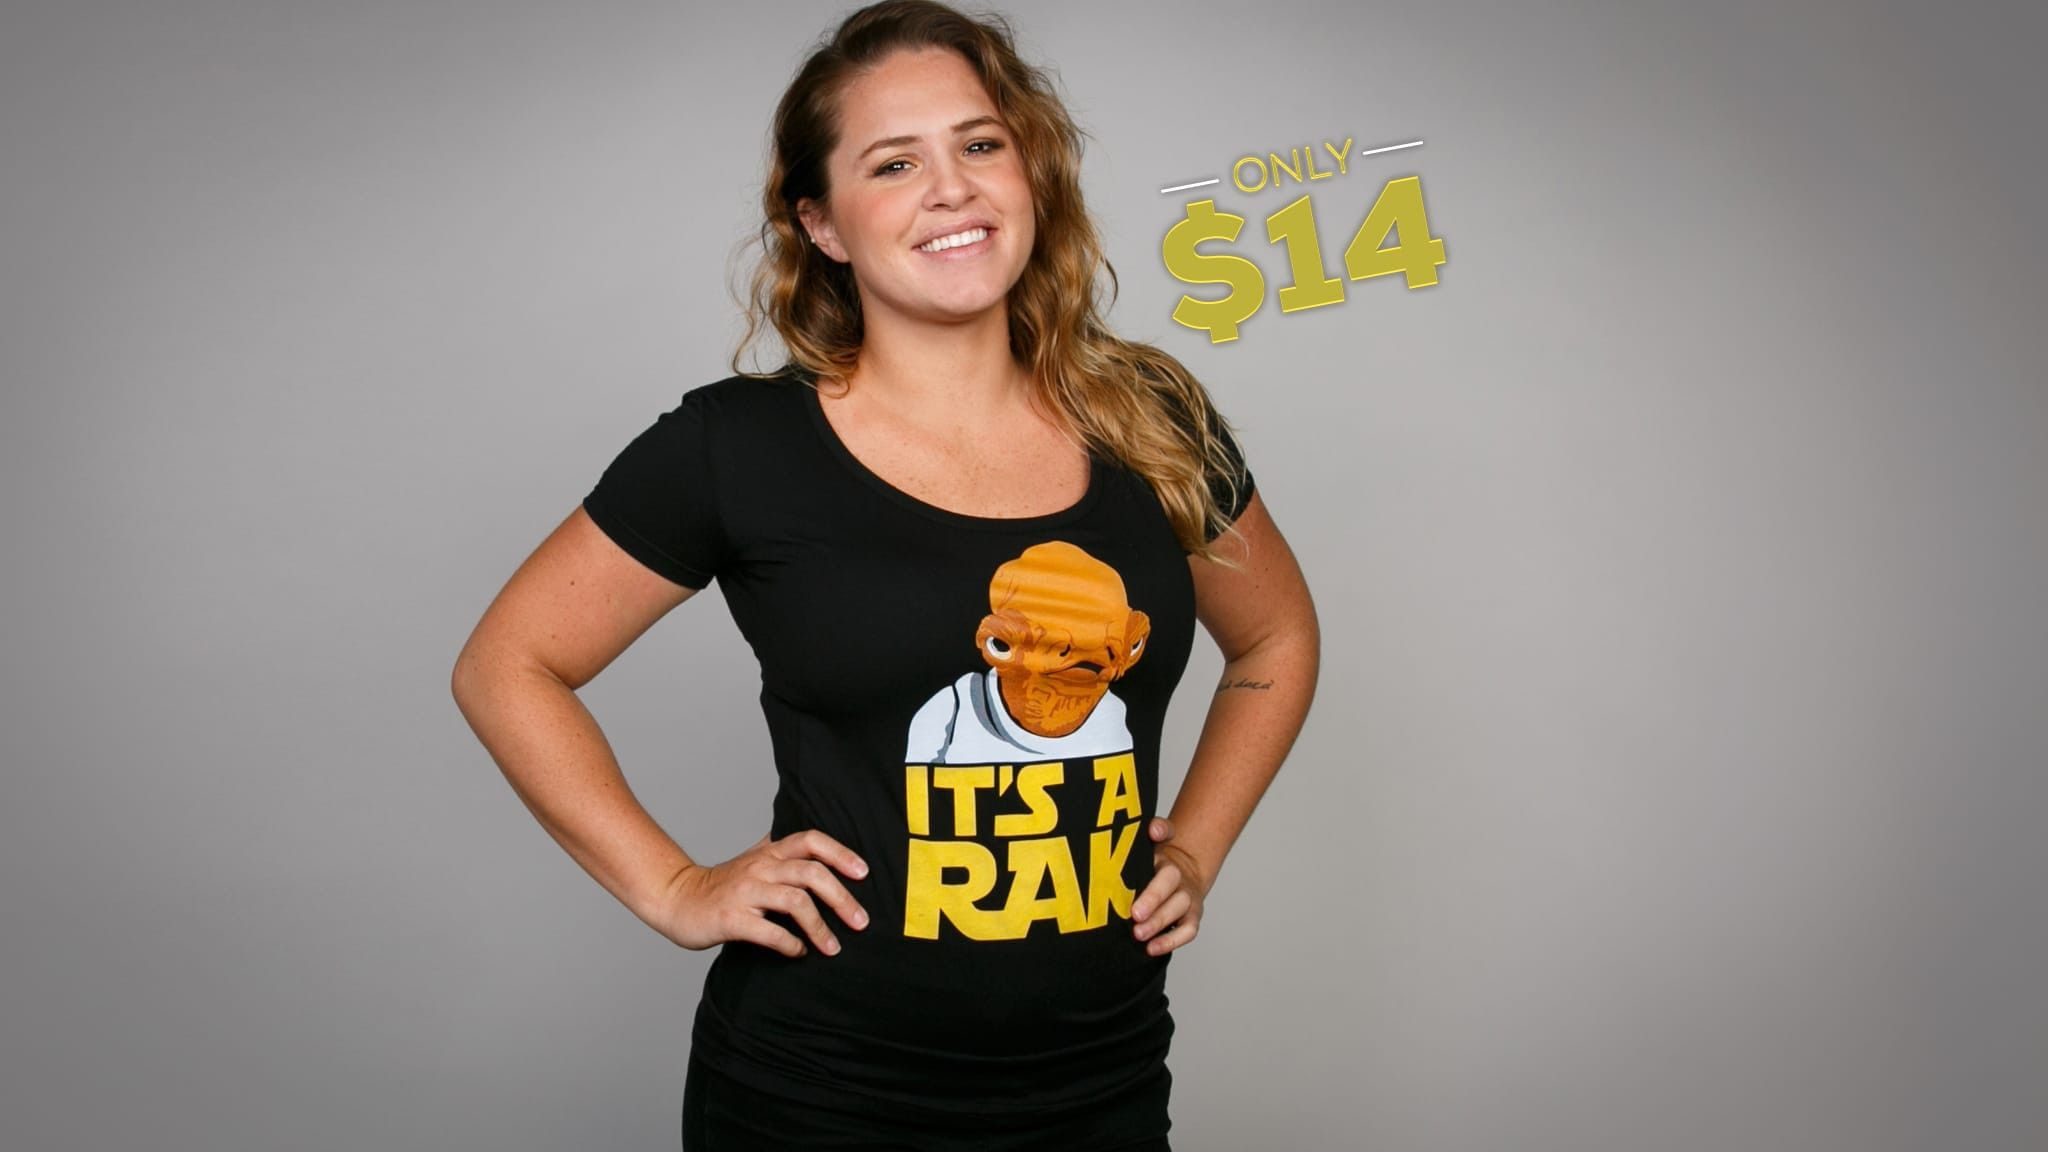 87c05971e It's a RAK Tee only $14. It's a RAK Tee only $14 The Chivery, Funny Tees, Official  Store, Cool